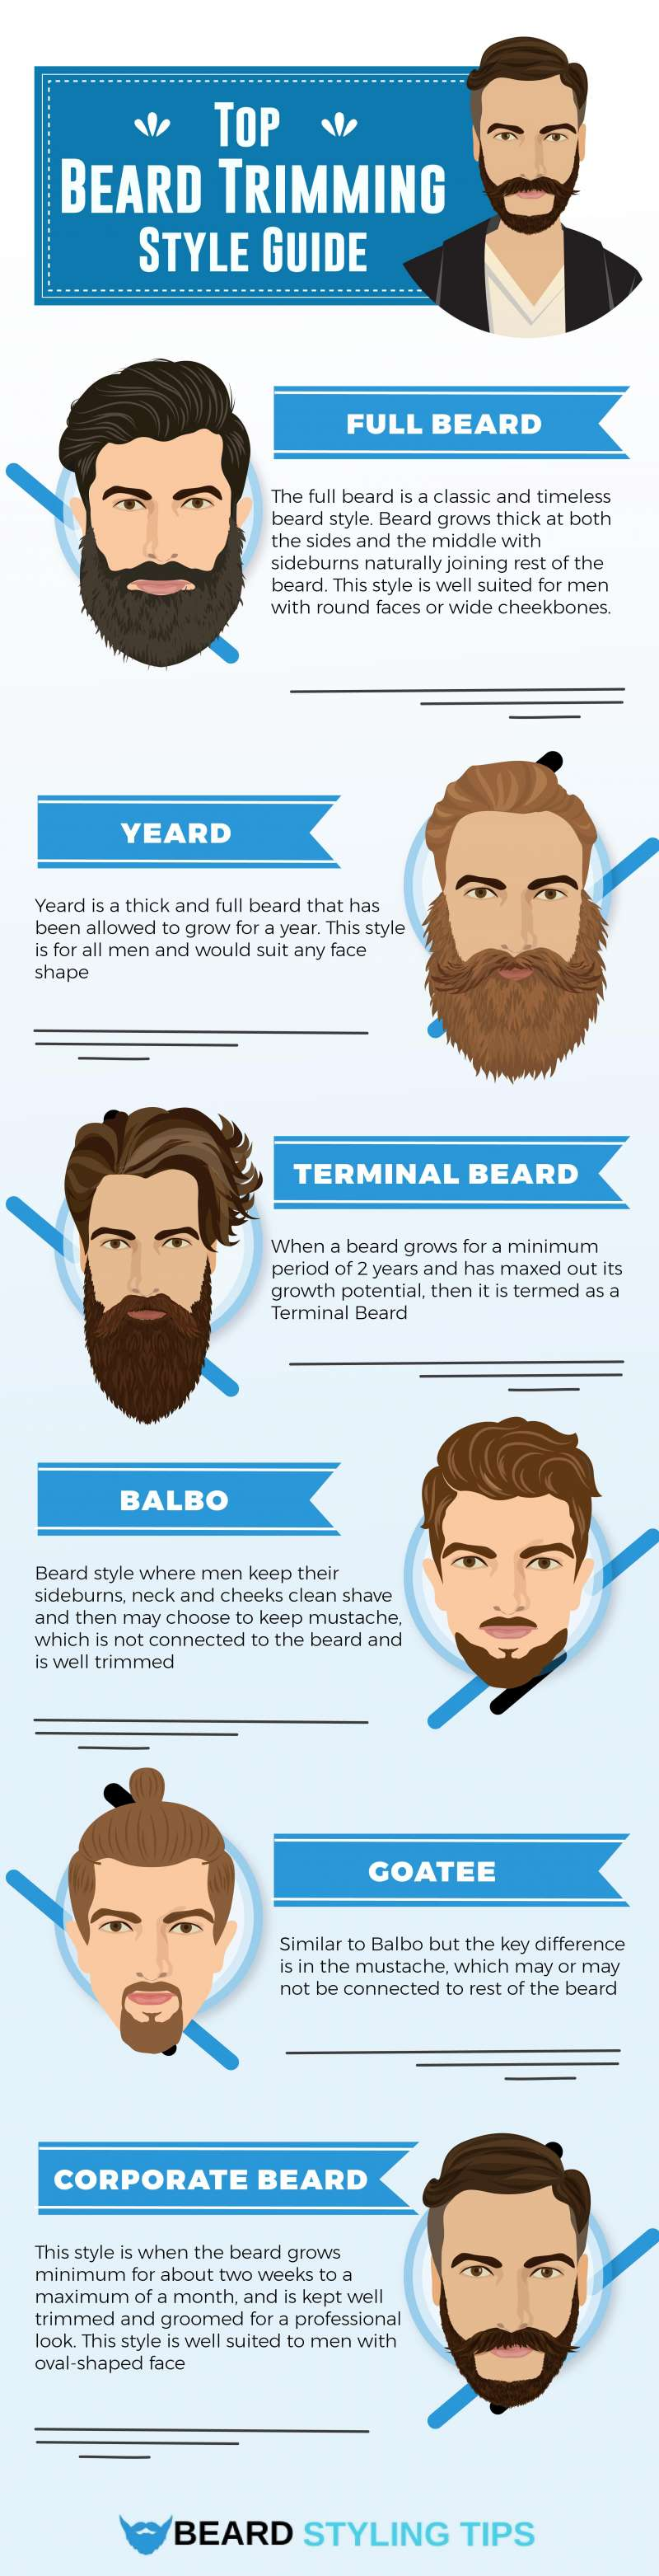 Top Beard Trimming Style Guide